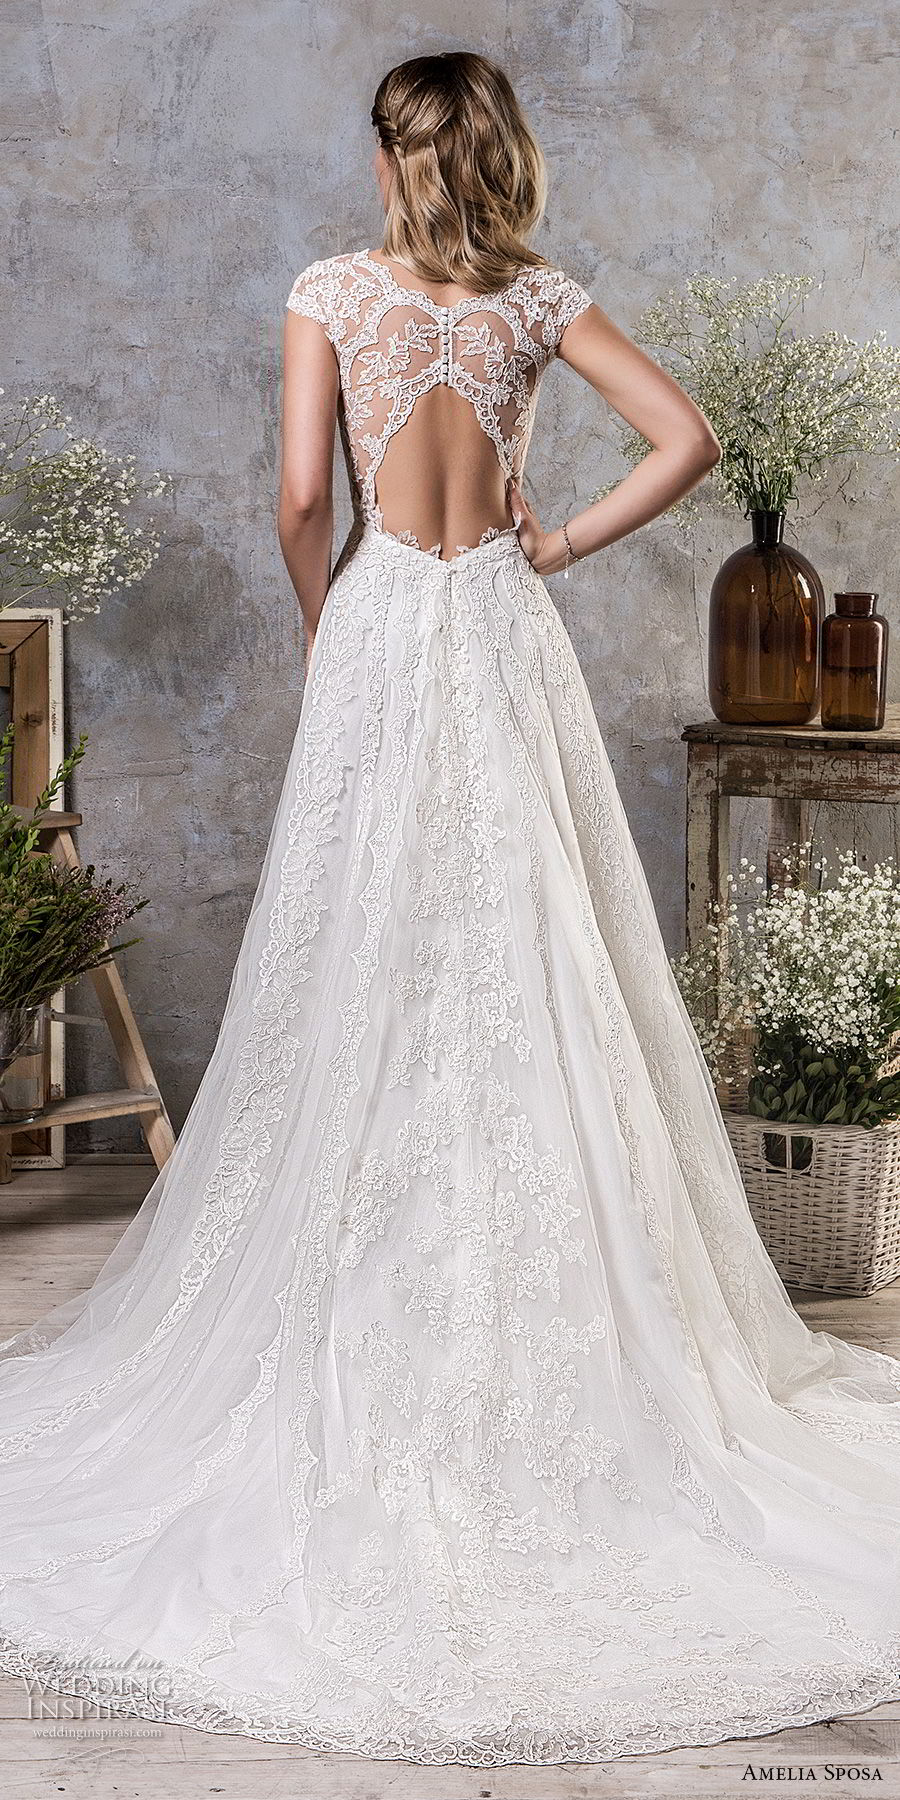 amelia sposa fall 2018 bridal cap sleeves illusion v sweetheart neckline heavily embellished bodice elegant romantic a line wedding dress keyhole back chapel train (8) bv